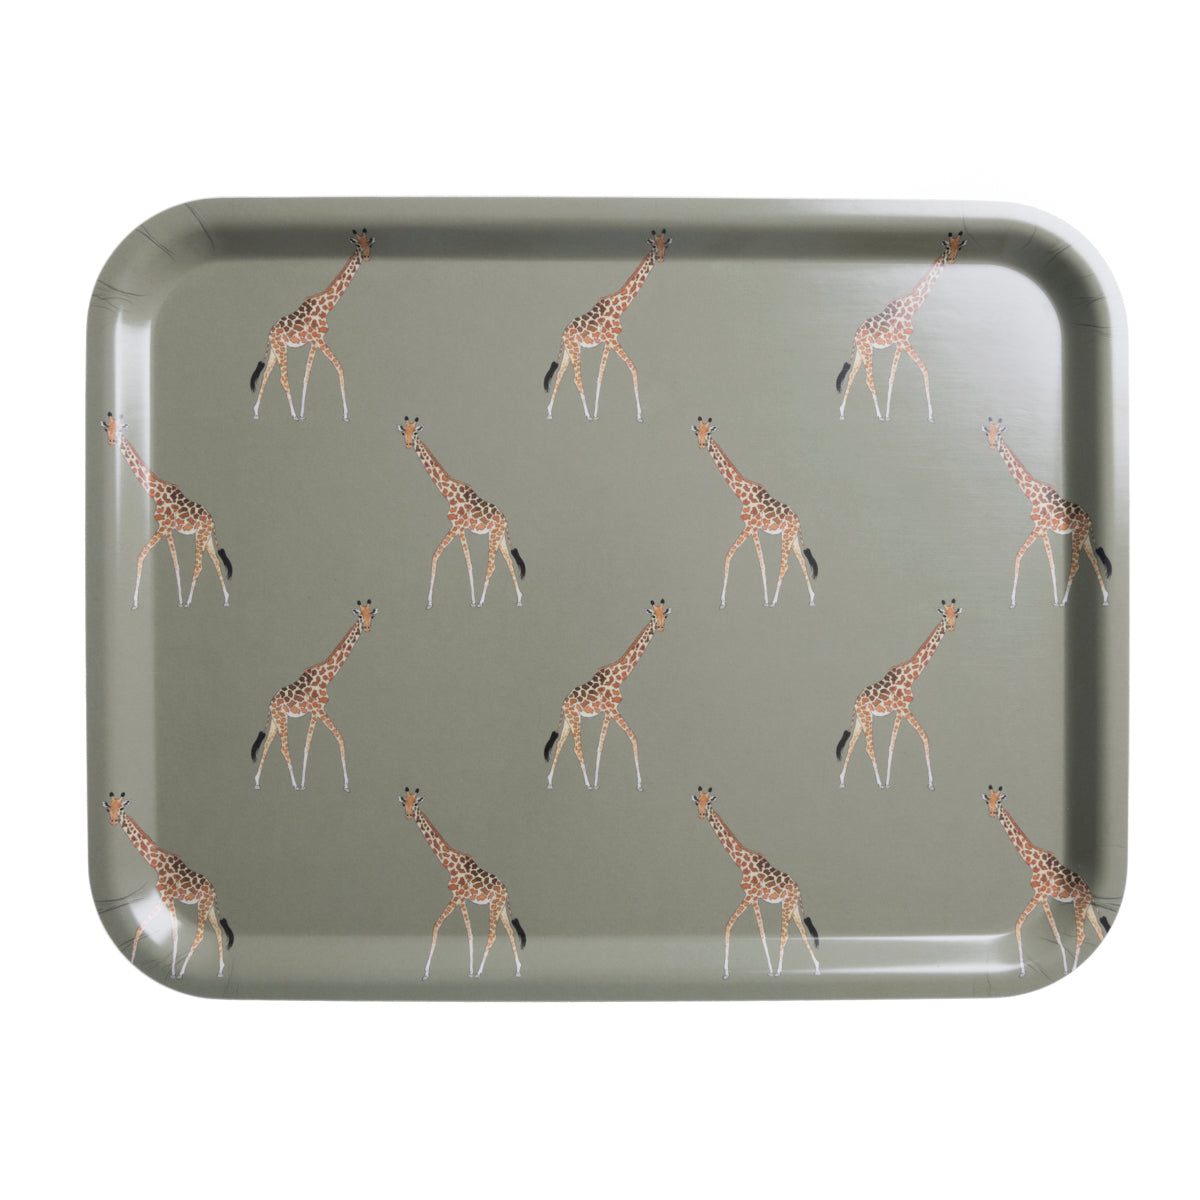 Giraffe Printed Tray Large by Sophie Allport